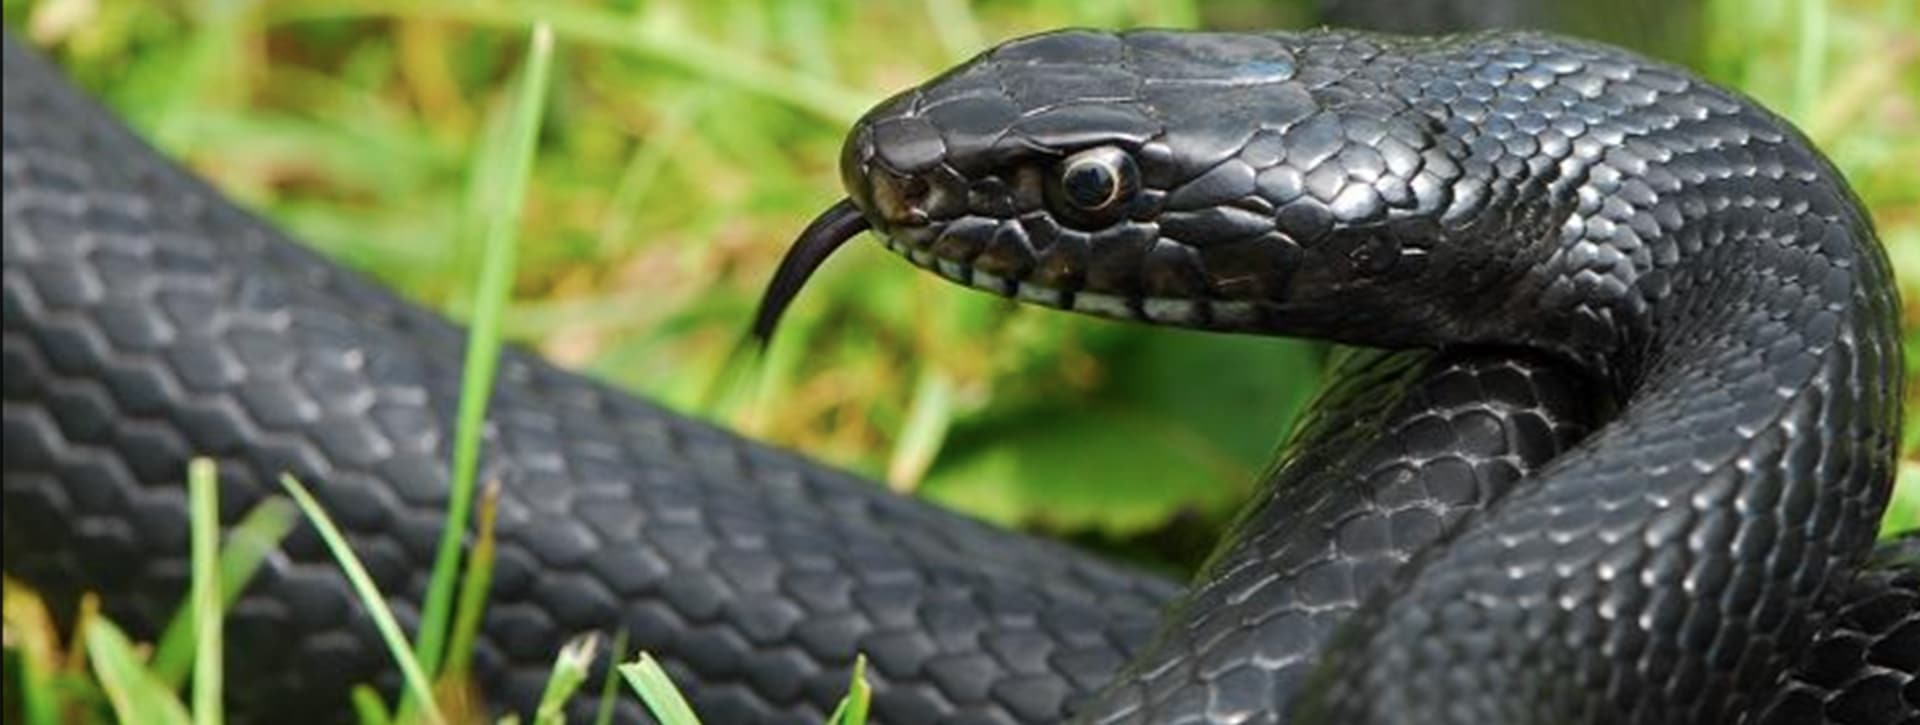 Snake Encounter: The Symbolic Meaning